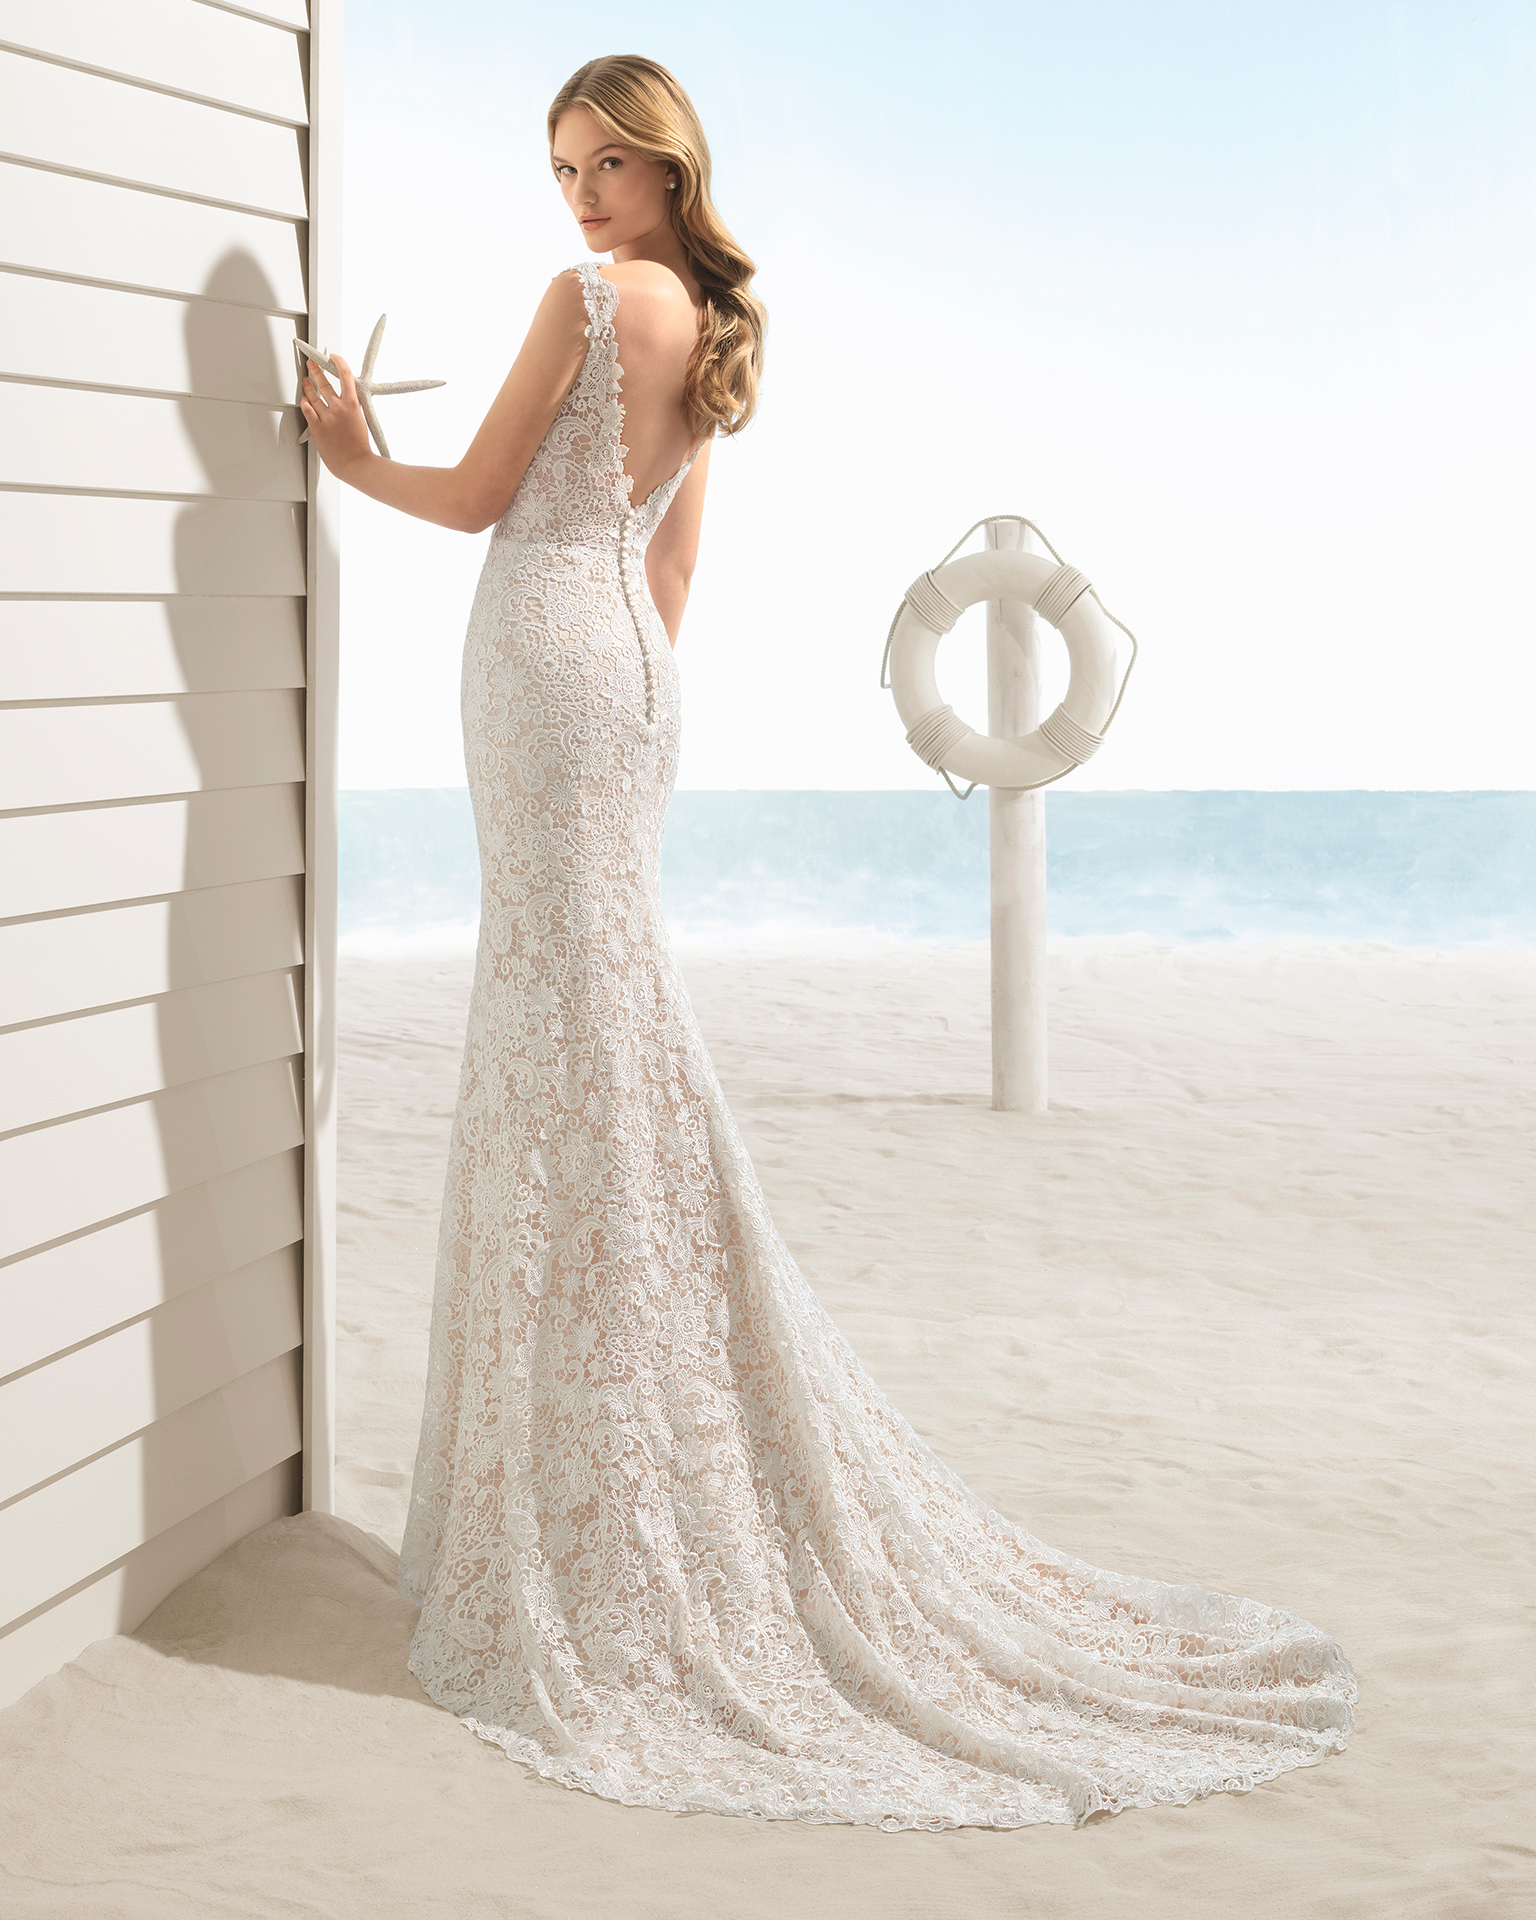 Mermaid-style guipure lace wedding dress with V-neckline and low back, in rose and natural.